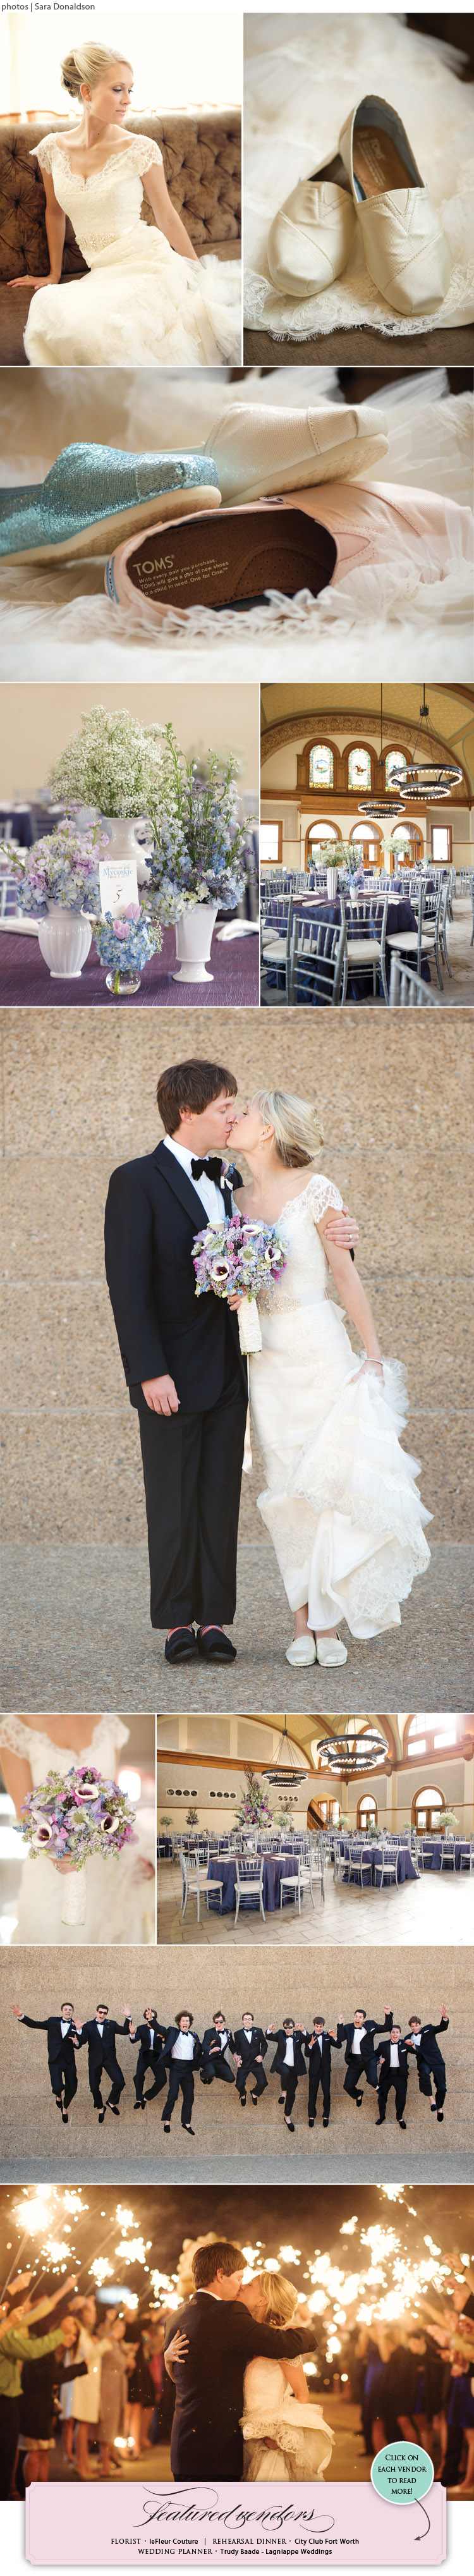 Brittany Campbell and Tyler Mycoskie - TOMS Shoes - Texas Wedding